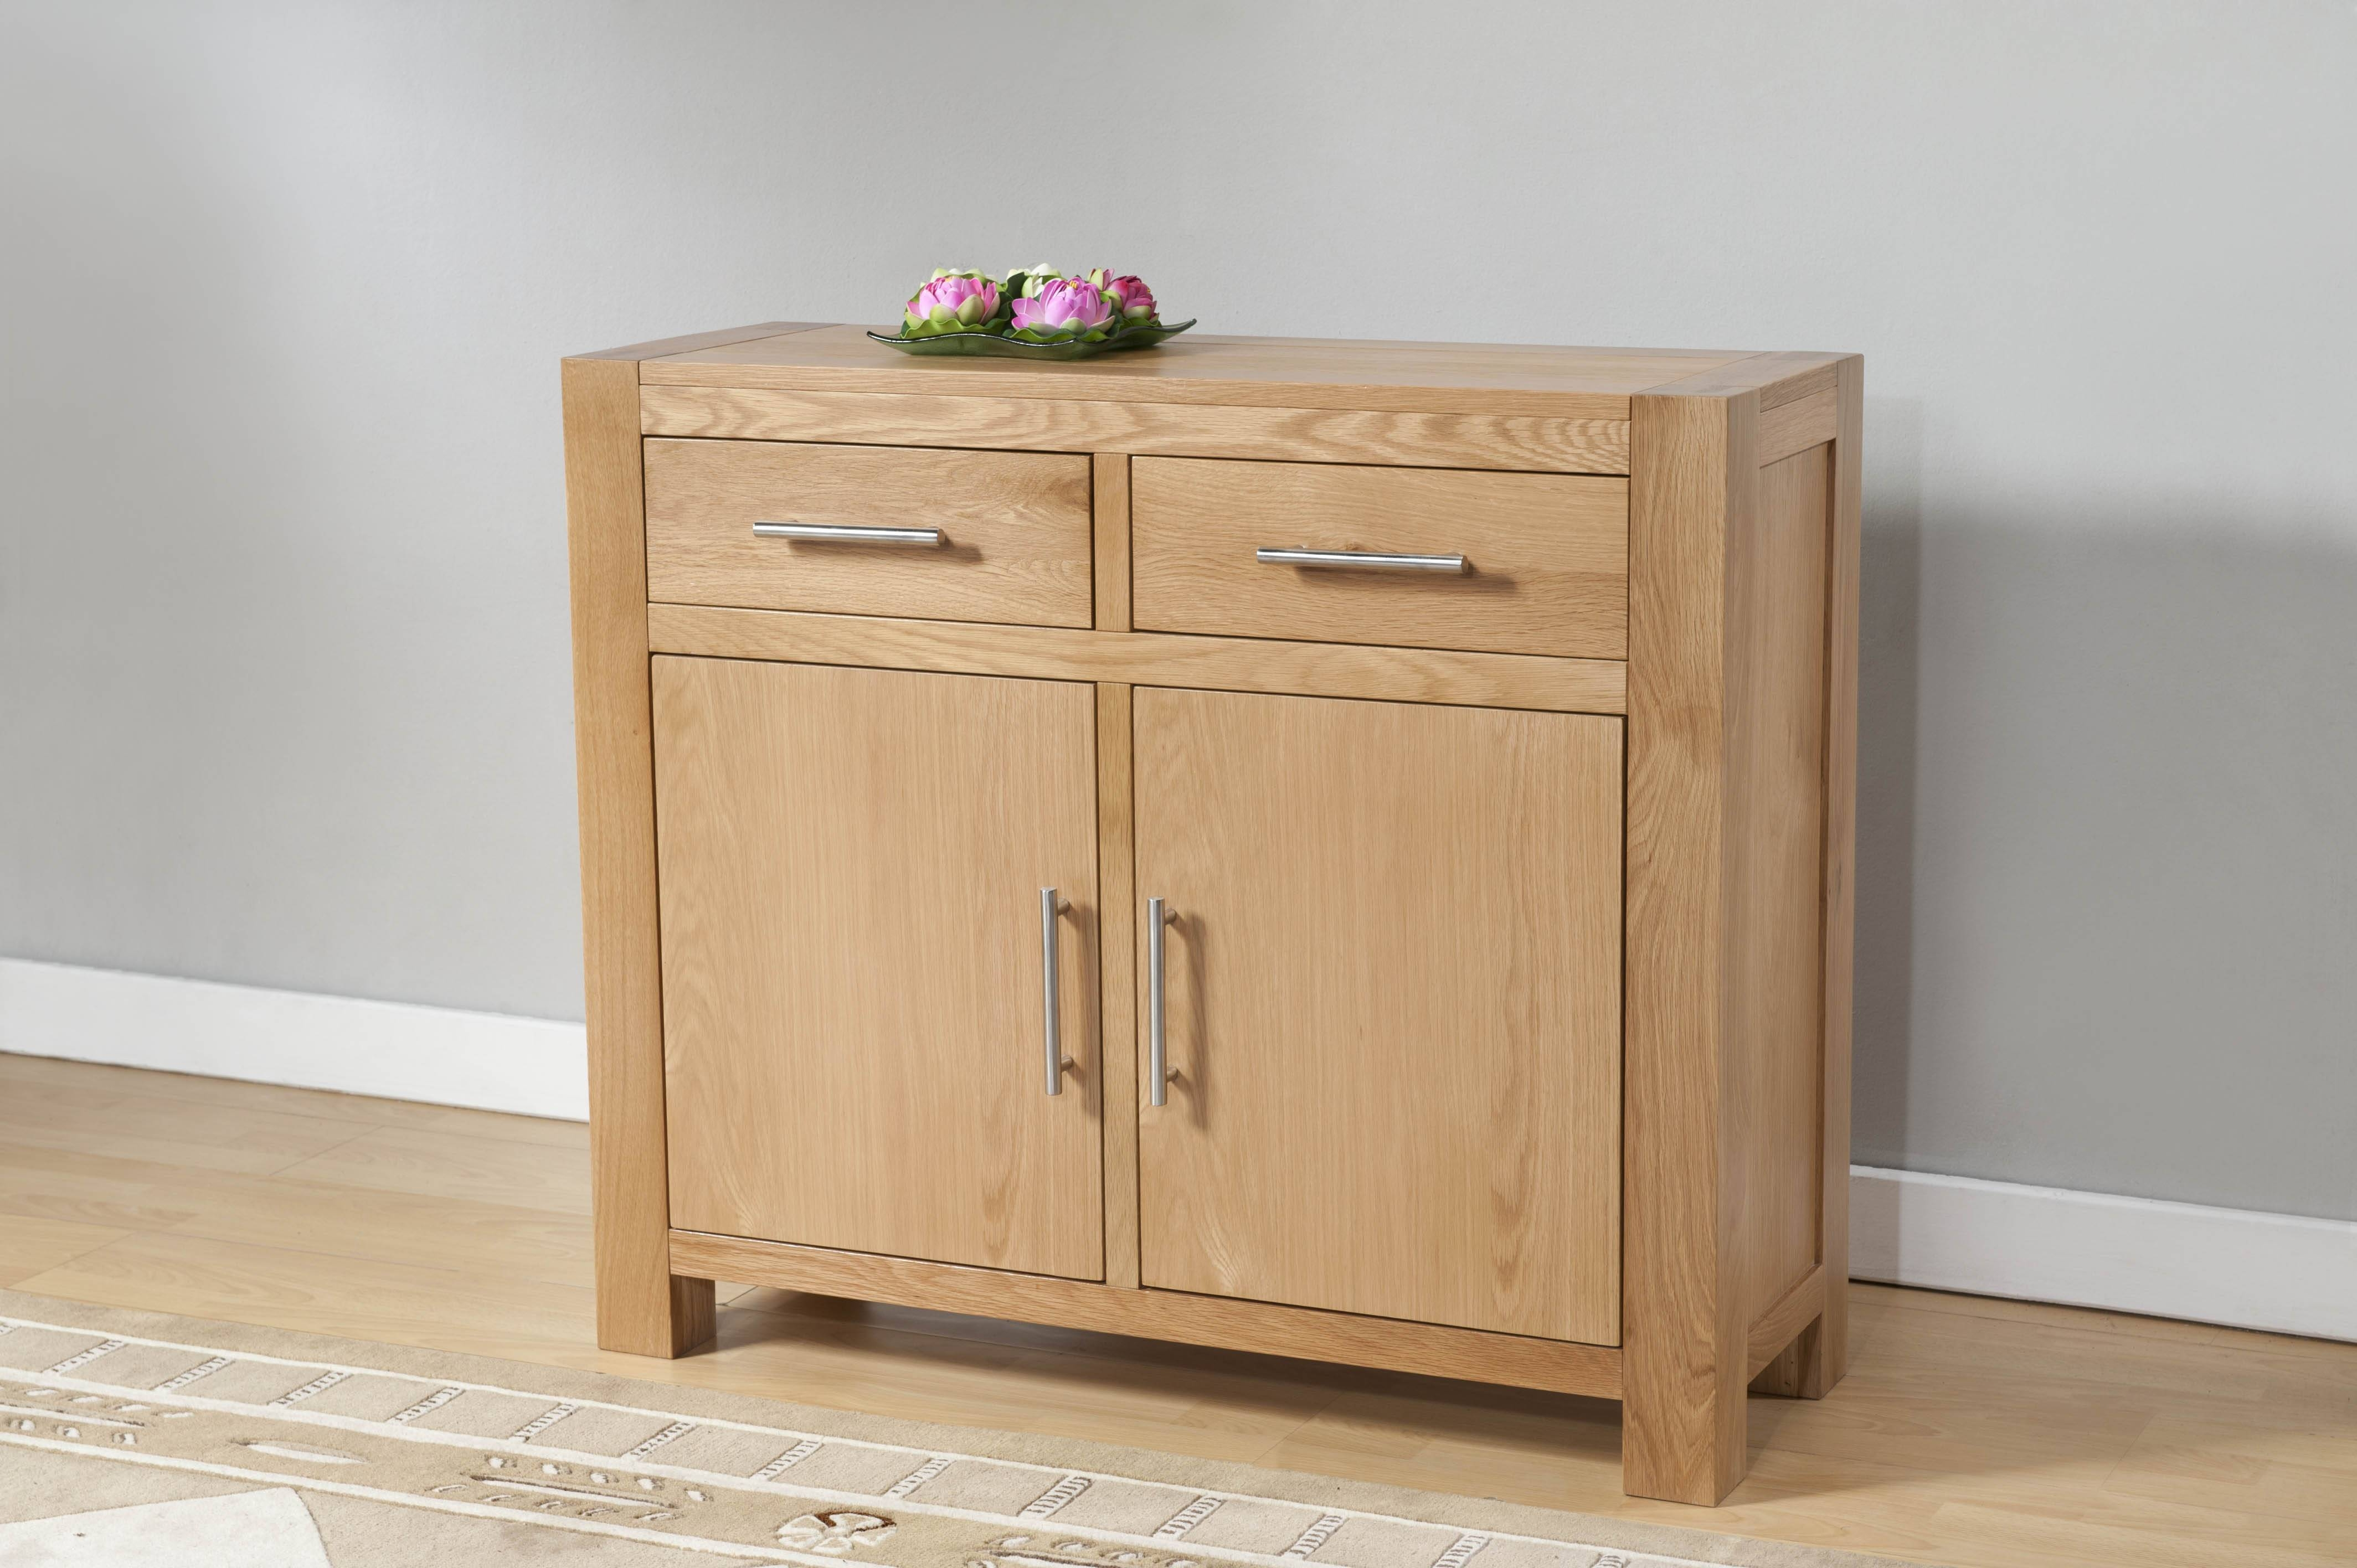 Milano Oak 2 Door 2 Drawer Small Sideboard | Oak Furniture Solutions Pertaining To Reclaimed Oak Sideboards (View 6 of 15)